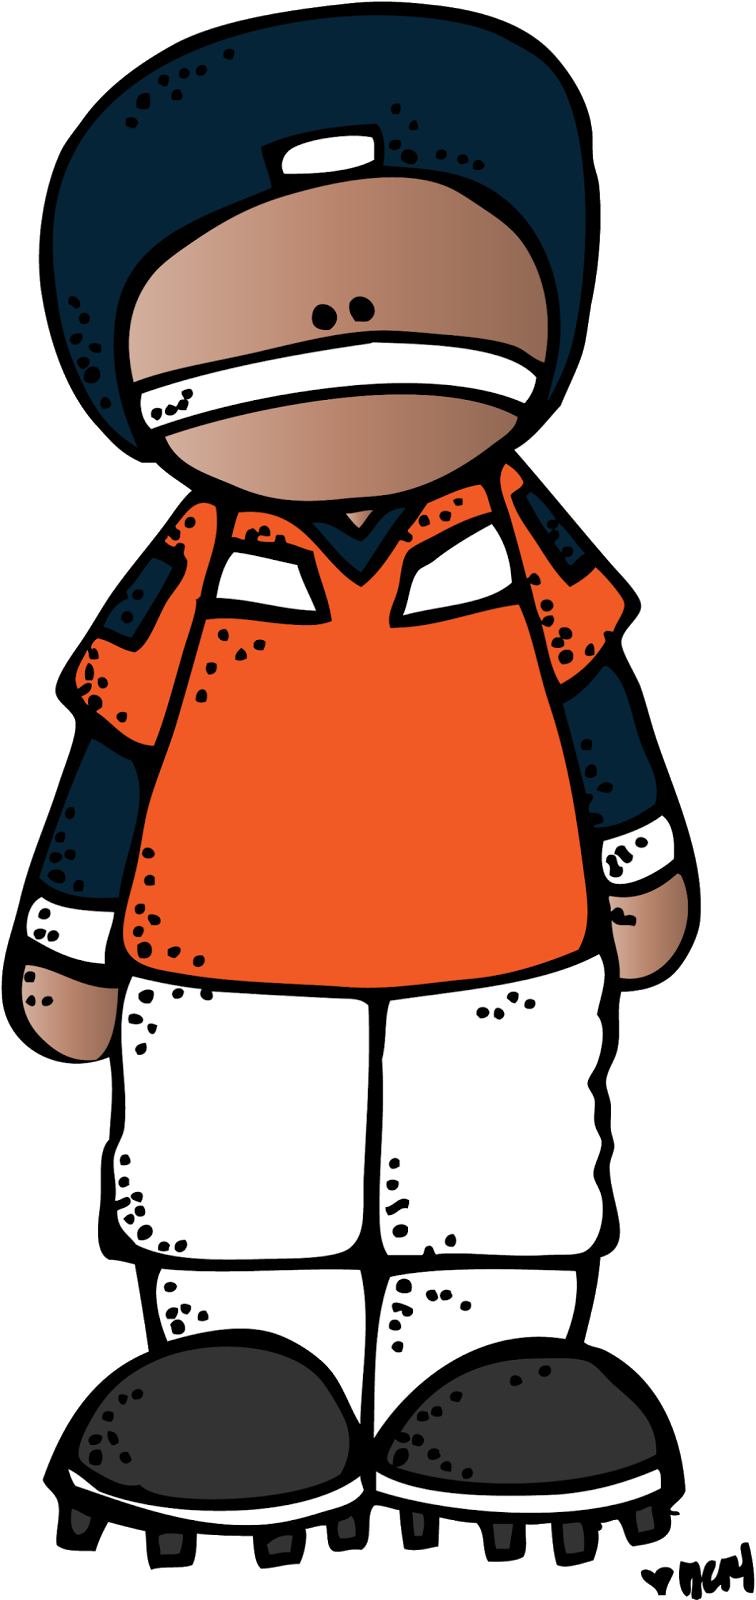 Color clipart football player. Melonheadz celebrate a freebie